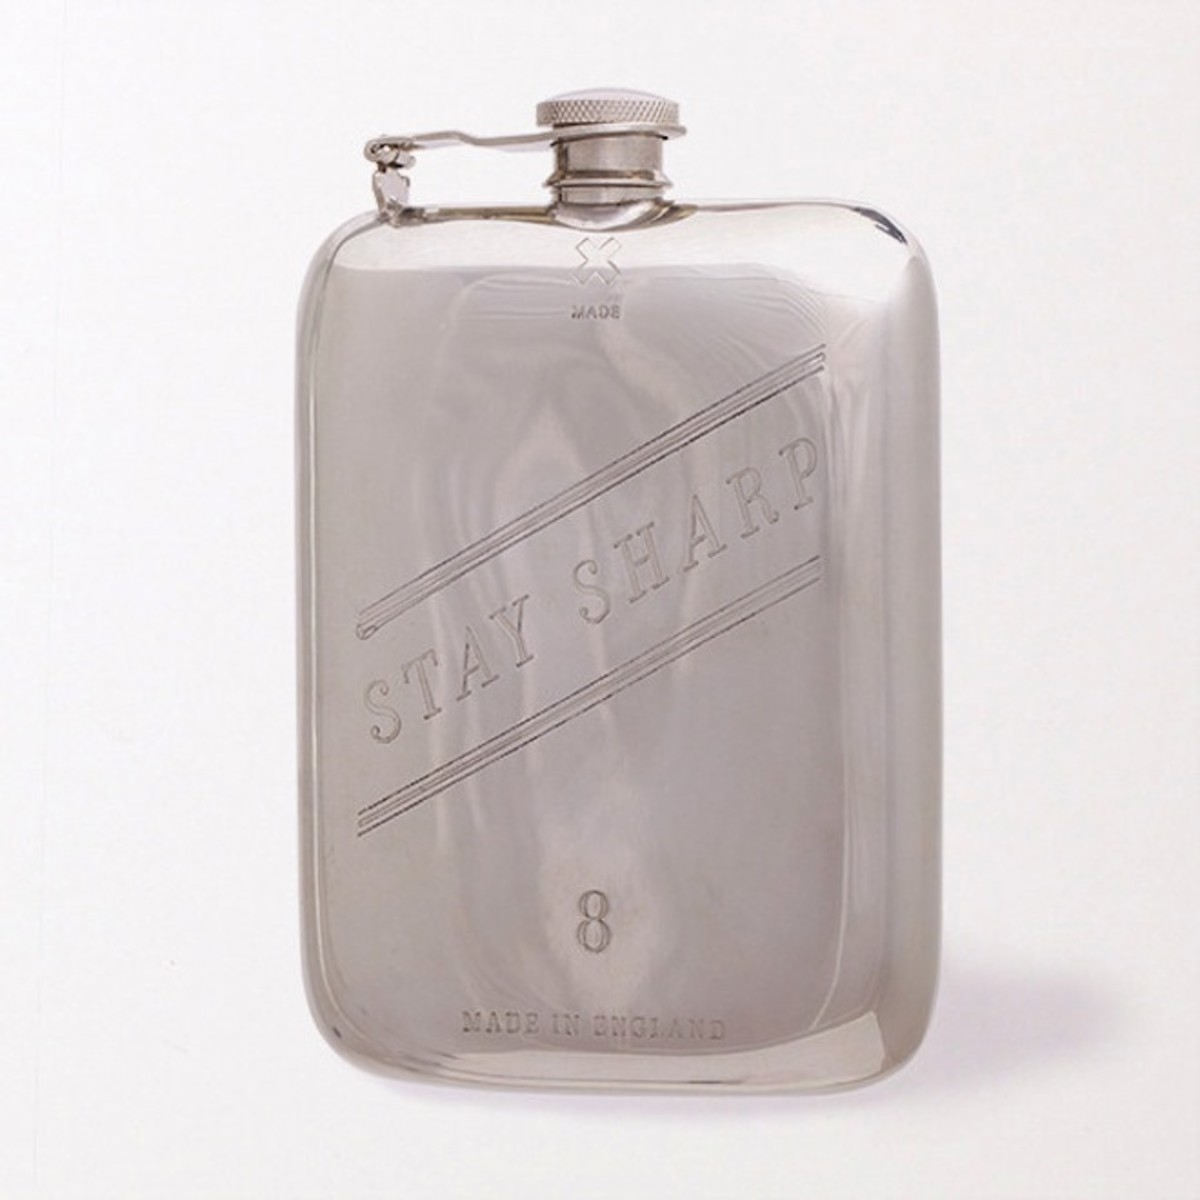 FLASK-600A_1024x1024